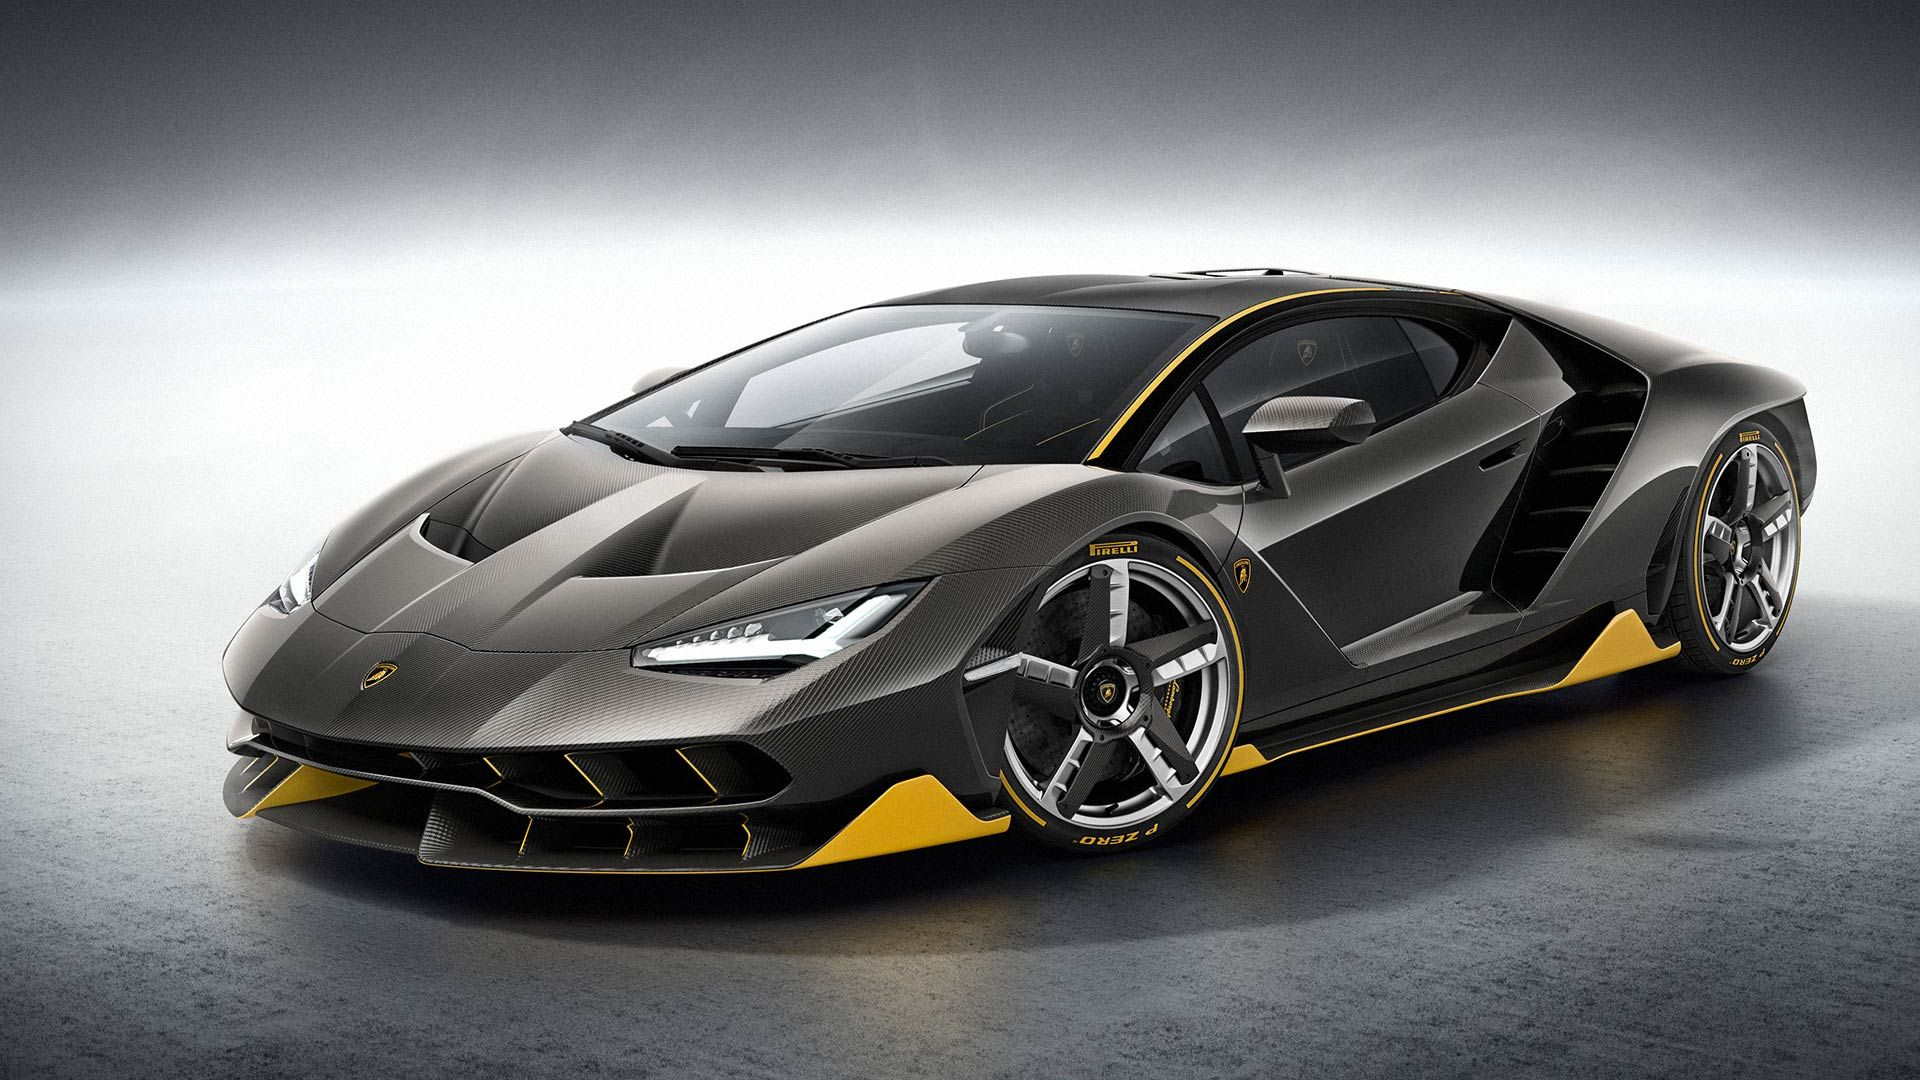 The Coolest Replicas Of Supercars Like Lamborghini Porsche And - Top ten coolest cars in the world